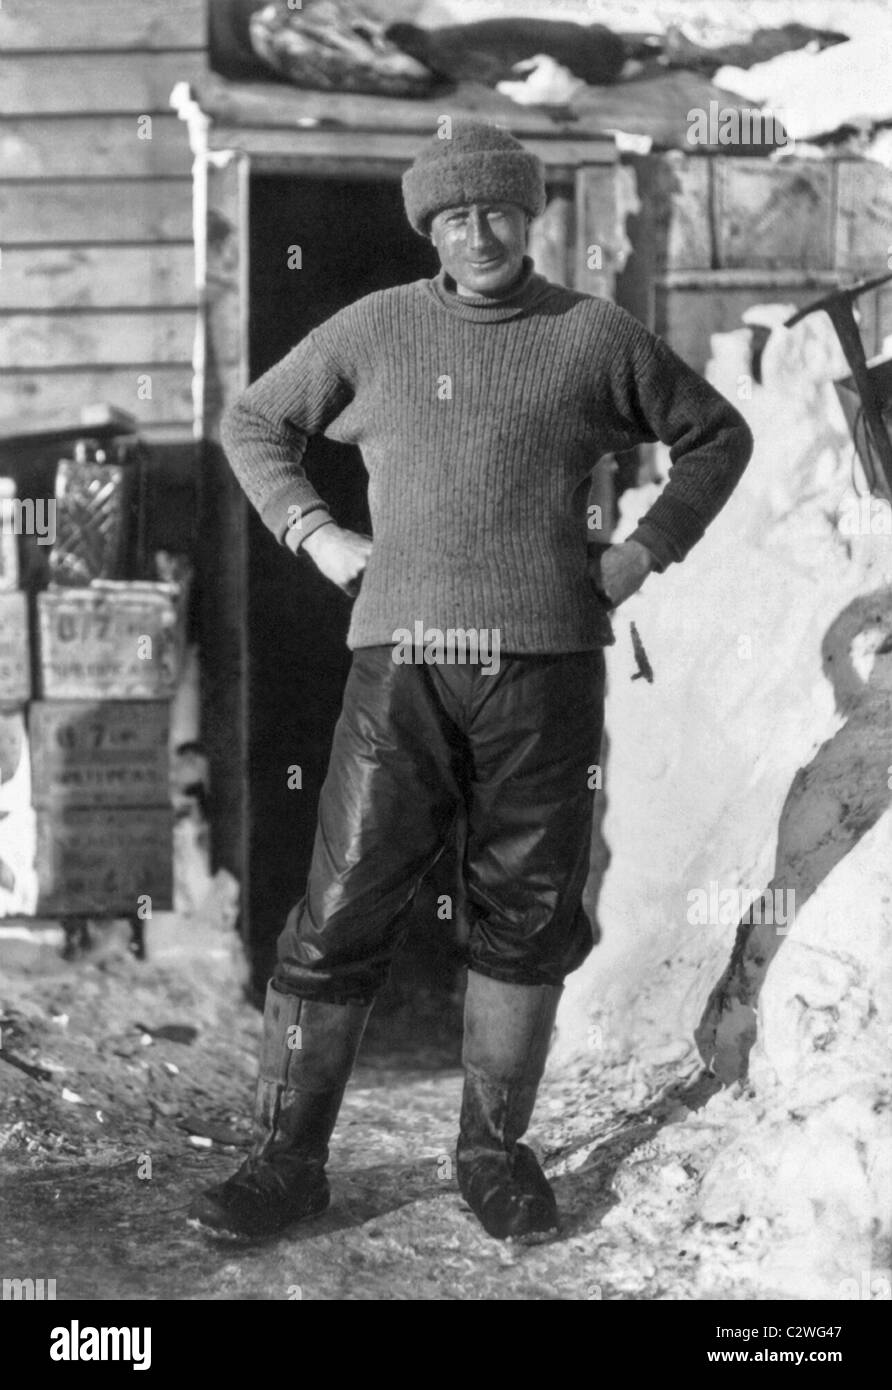 Dr Edward Wilson (1872 - 1912) - a member of Robert Scott's Terra Nova Expedition that perished after reaching - Stock Image